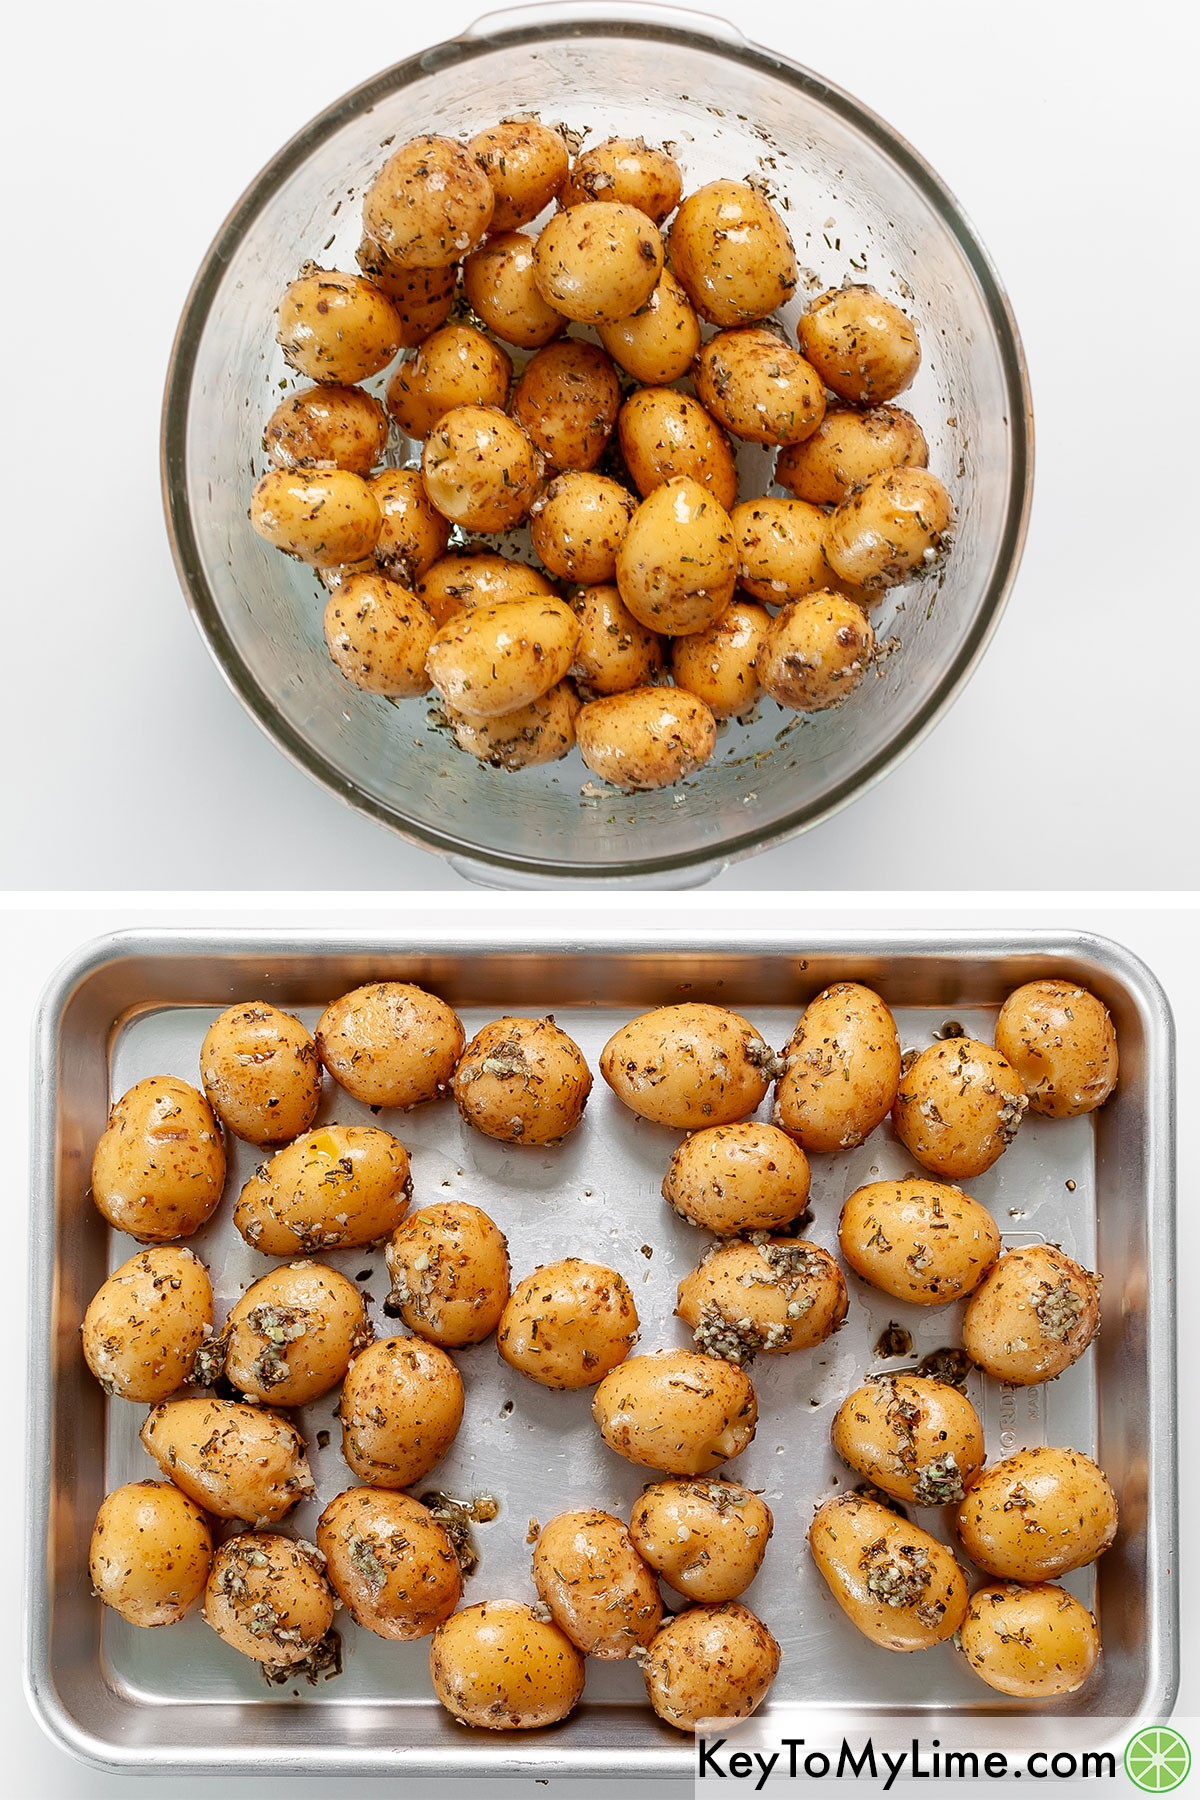 Oiling baby potatoes and then placing them on a baking tray.